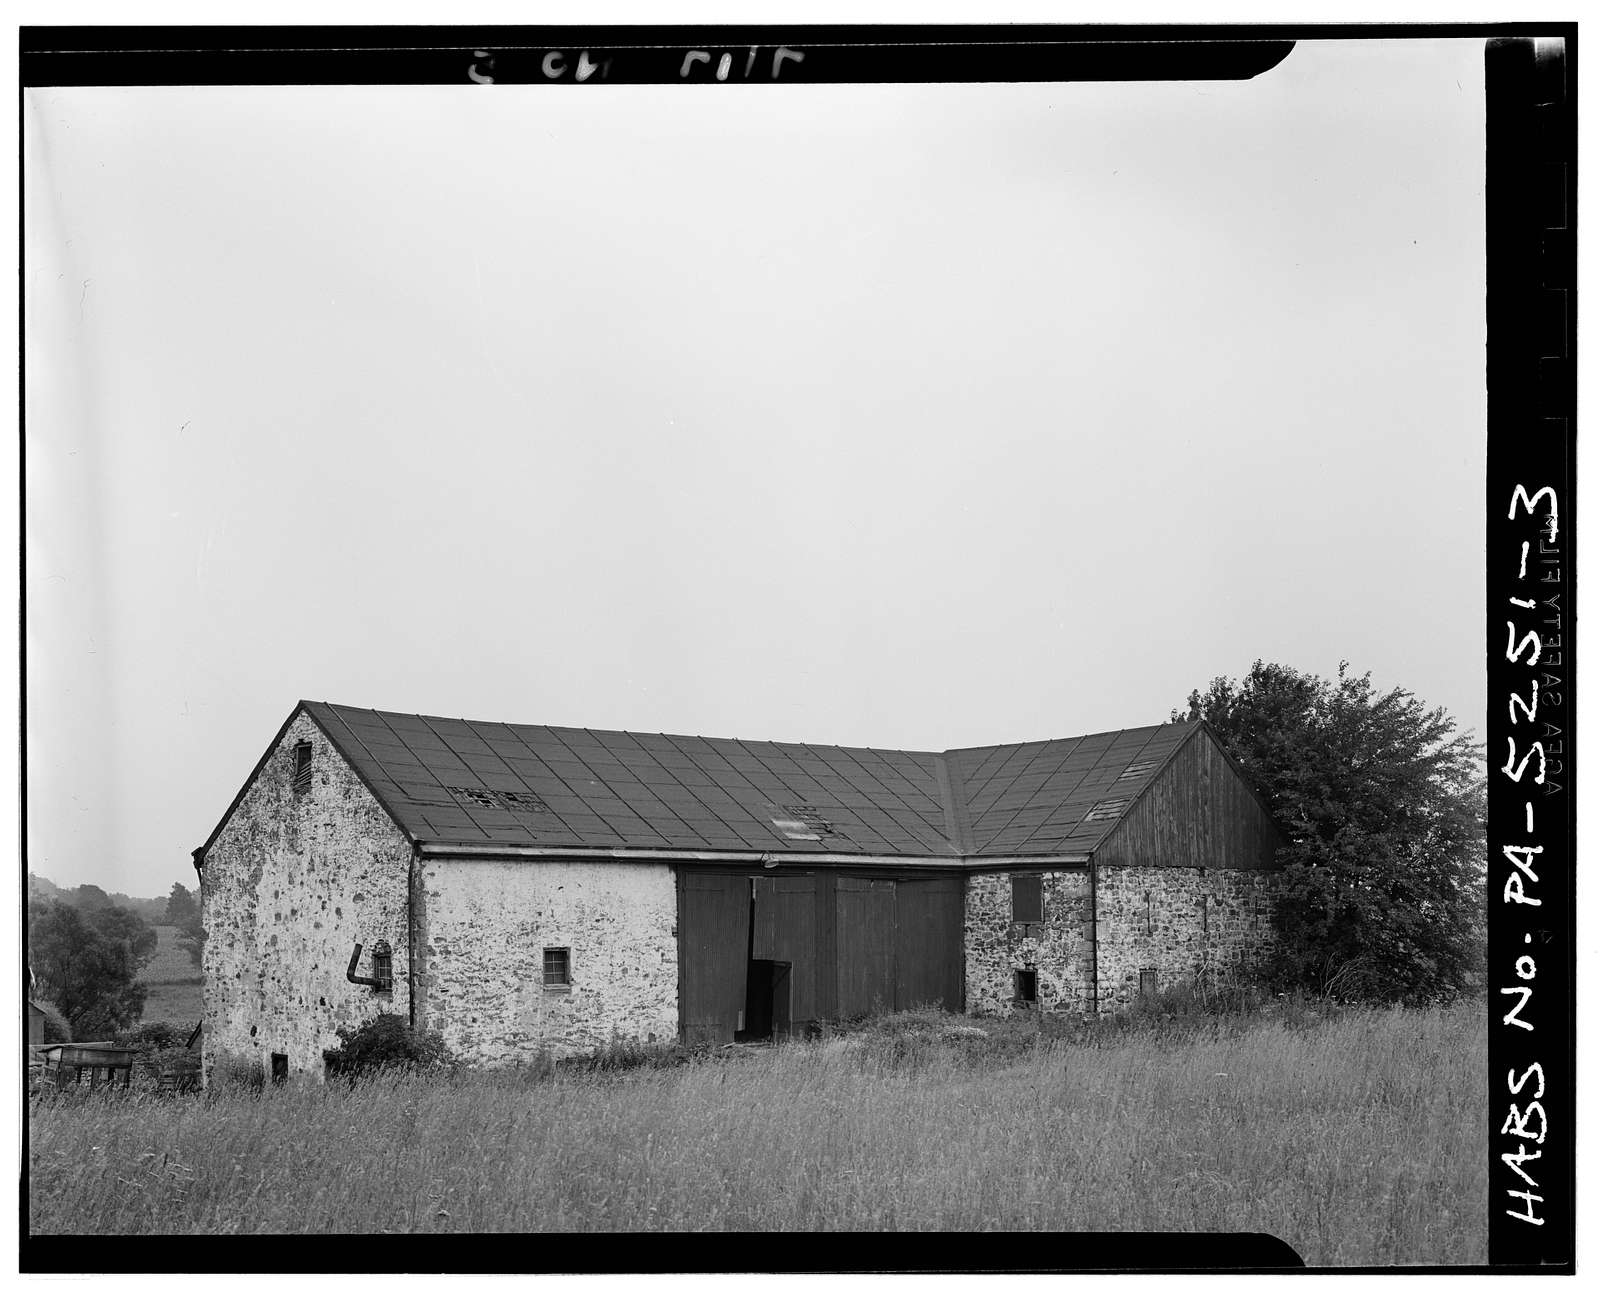 Stone Barn, State Route 23, Whitpain Township, Center Square, Montgomery County, PA